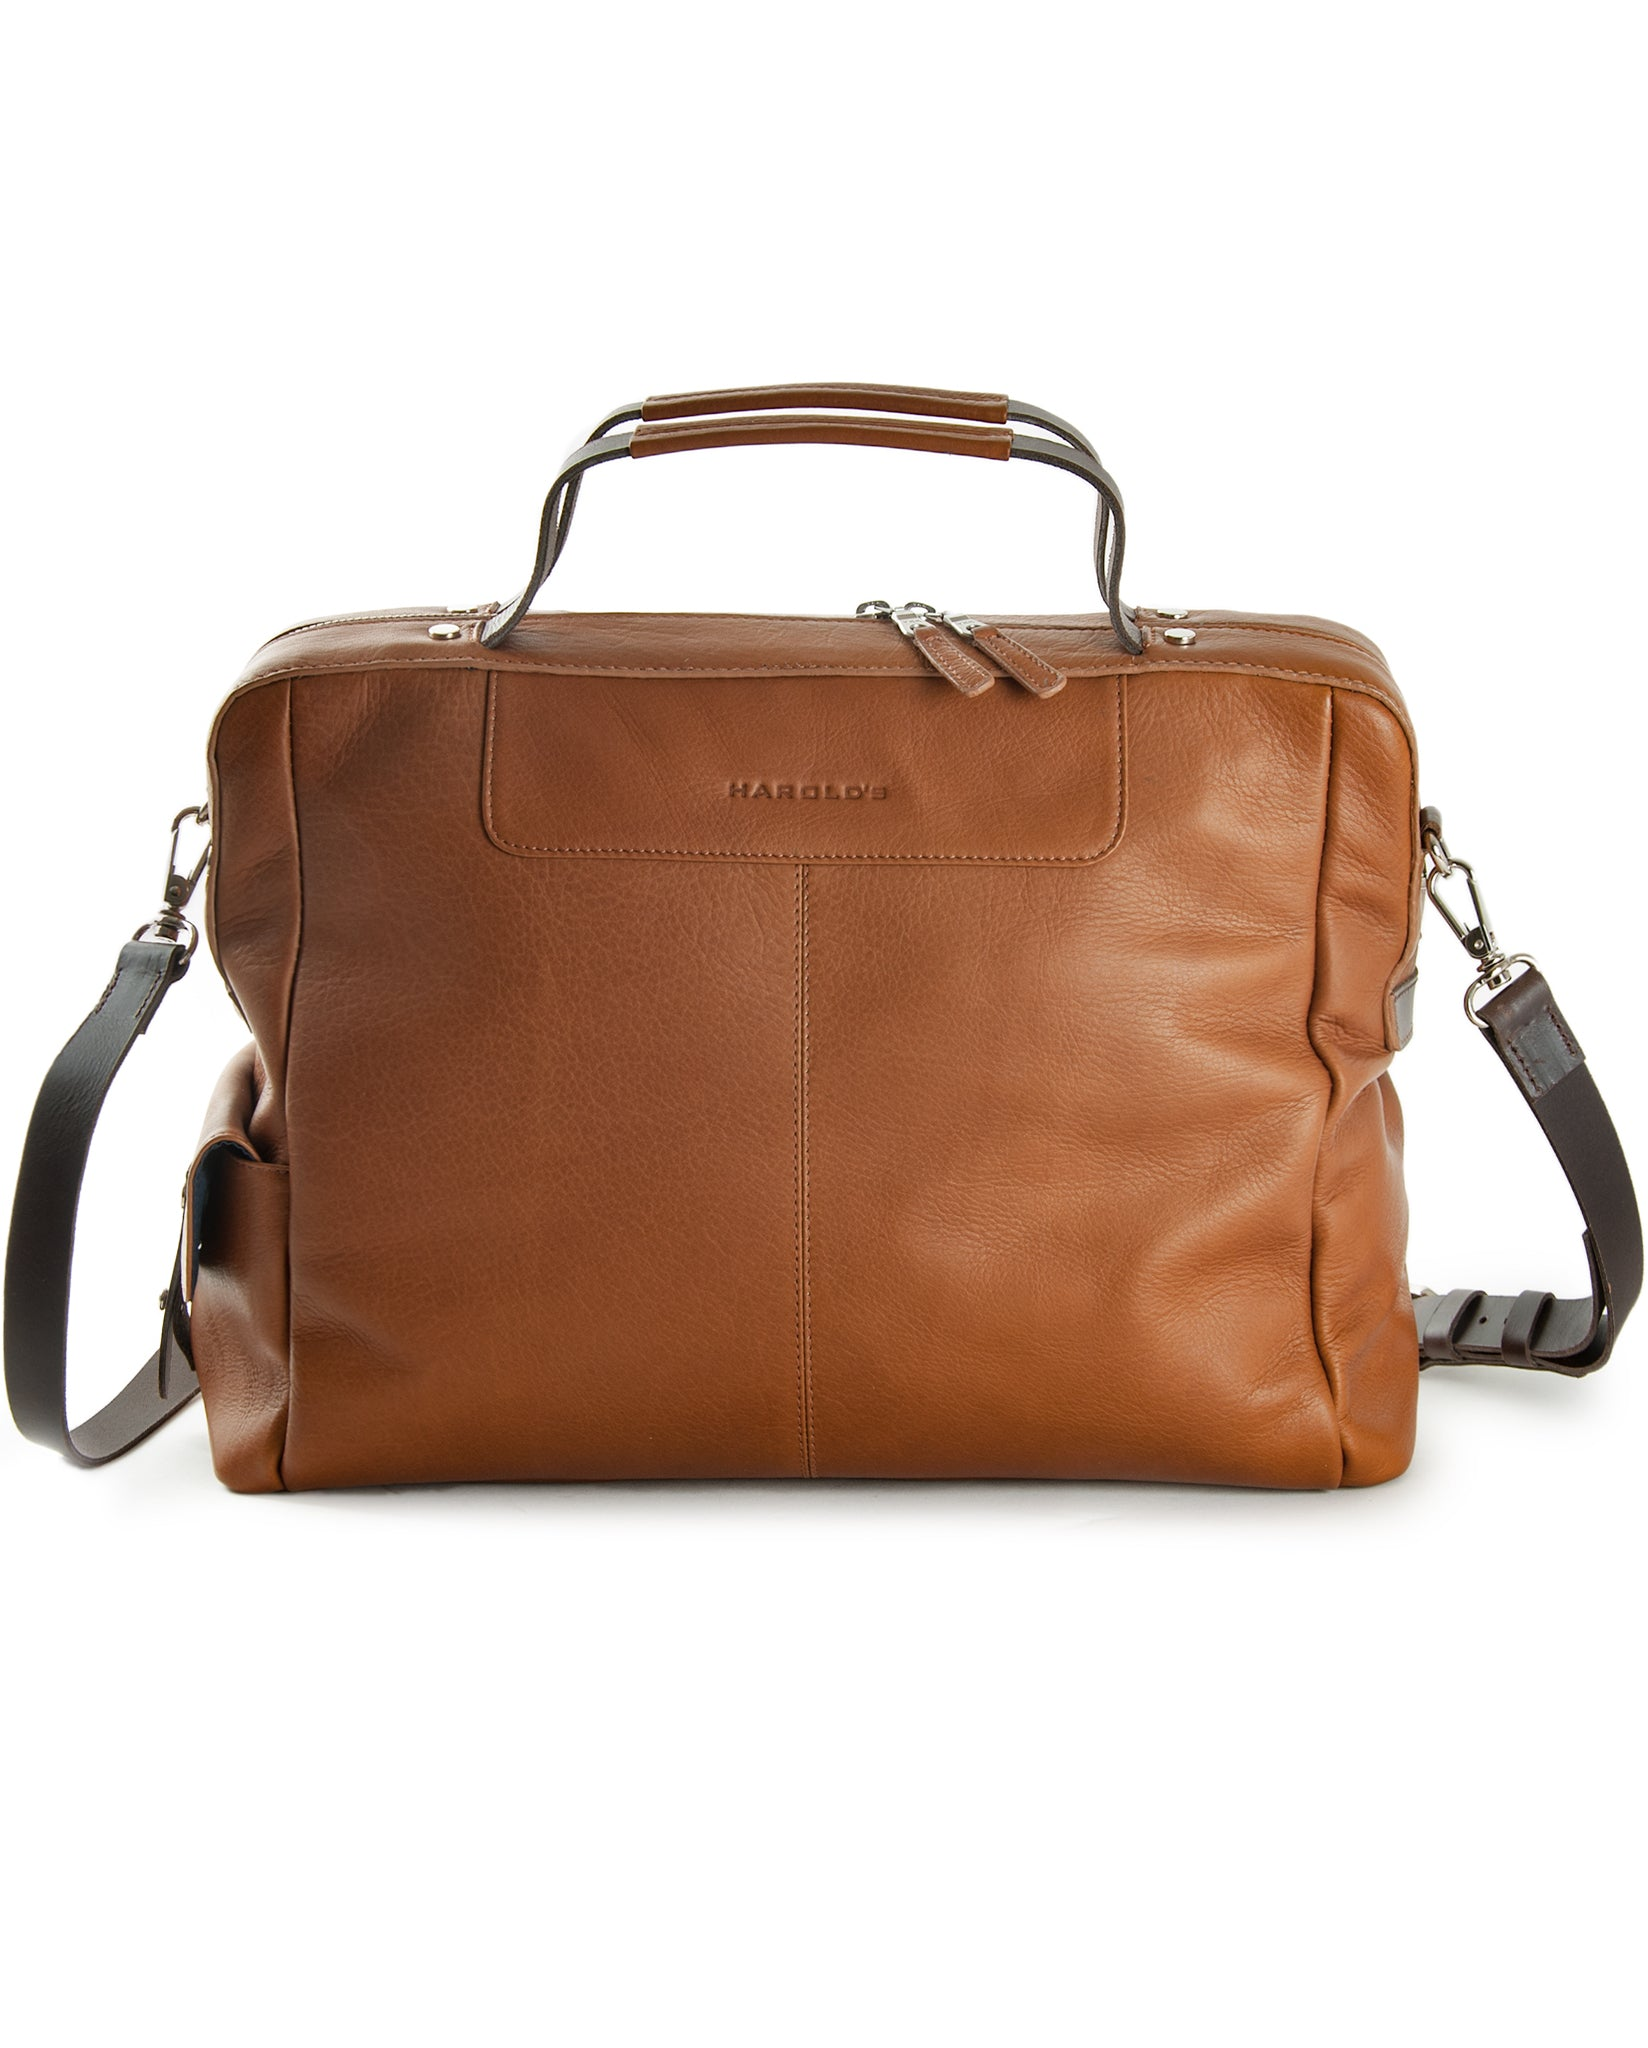 Country Framebag businessbag